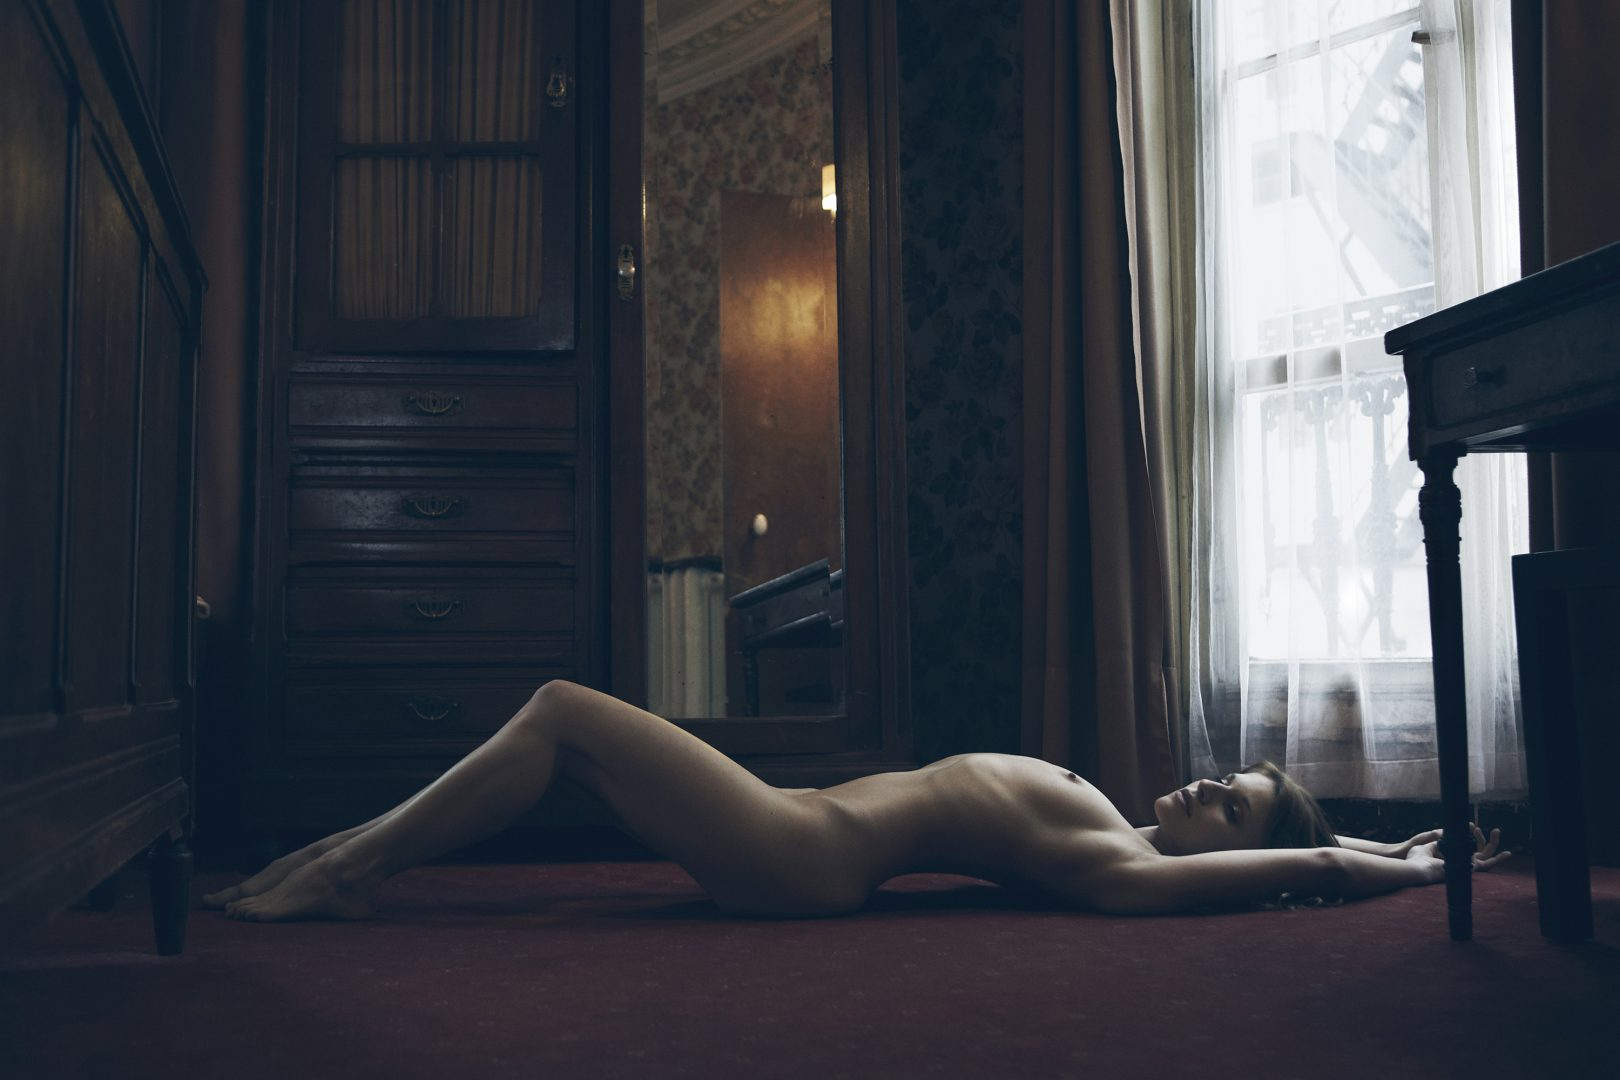 Naked girl lying on floor in hotel room by Stefan Rappo